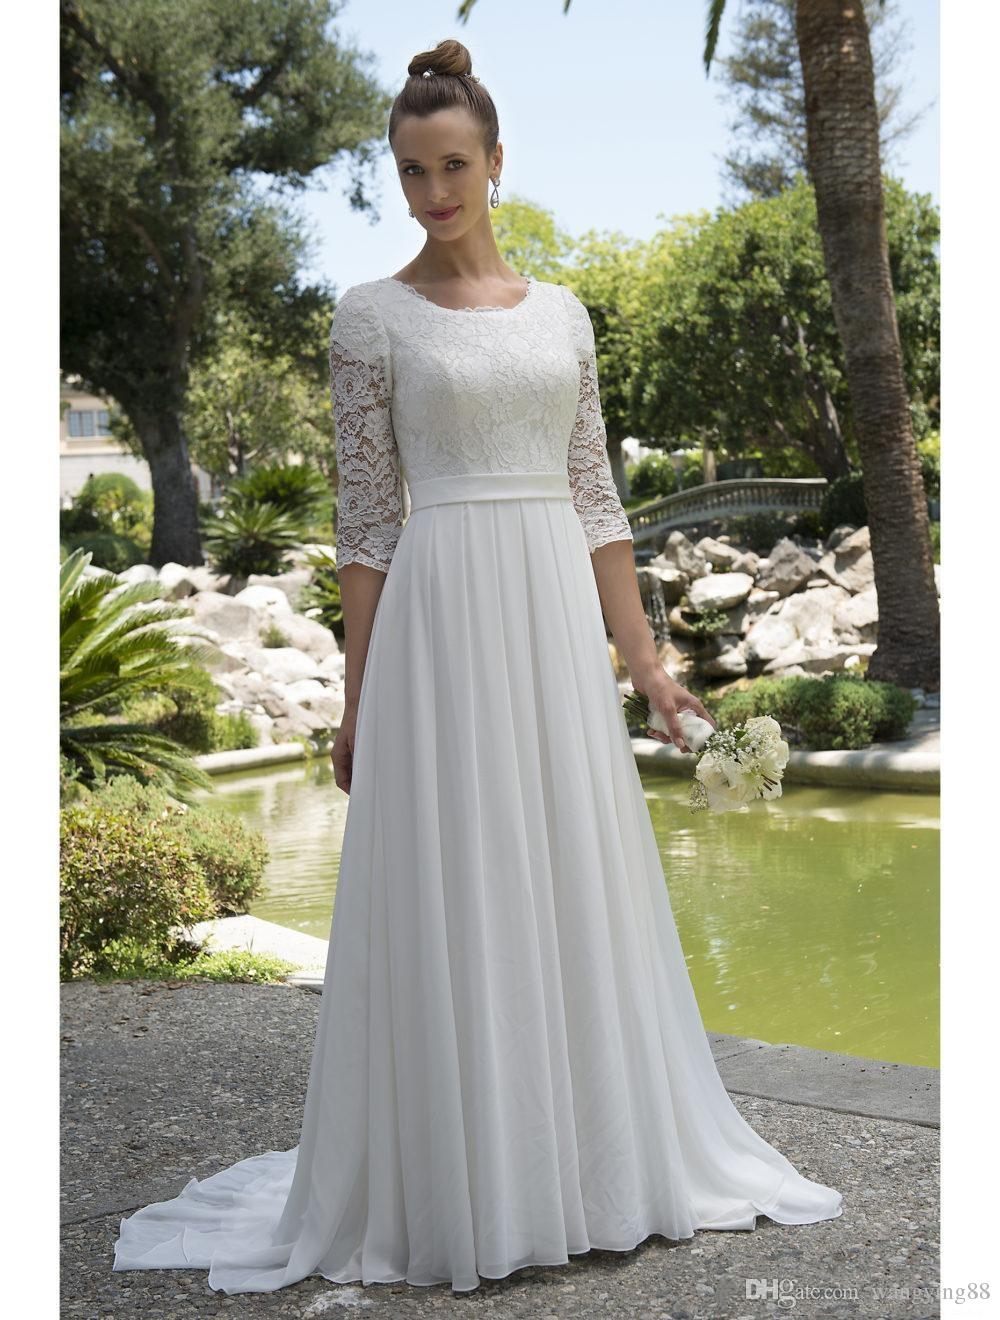 Informal Lace Chiffon Modest Beach Wedding Dresses With 34 Sleeves Scoop Neck Reception Bridal Gowns Mature Bride Elegant New